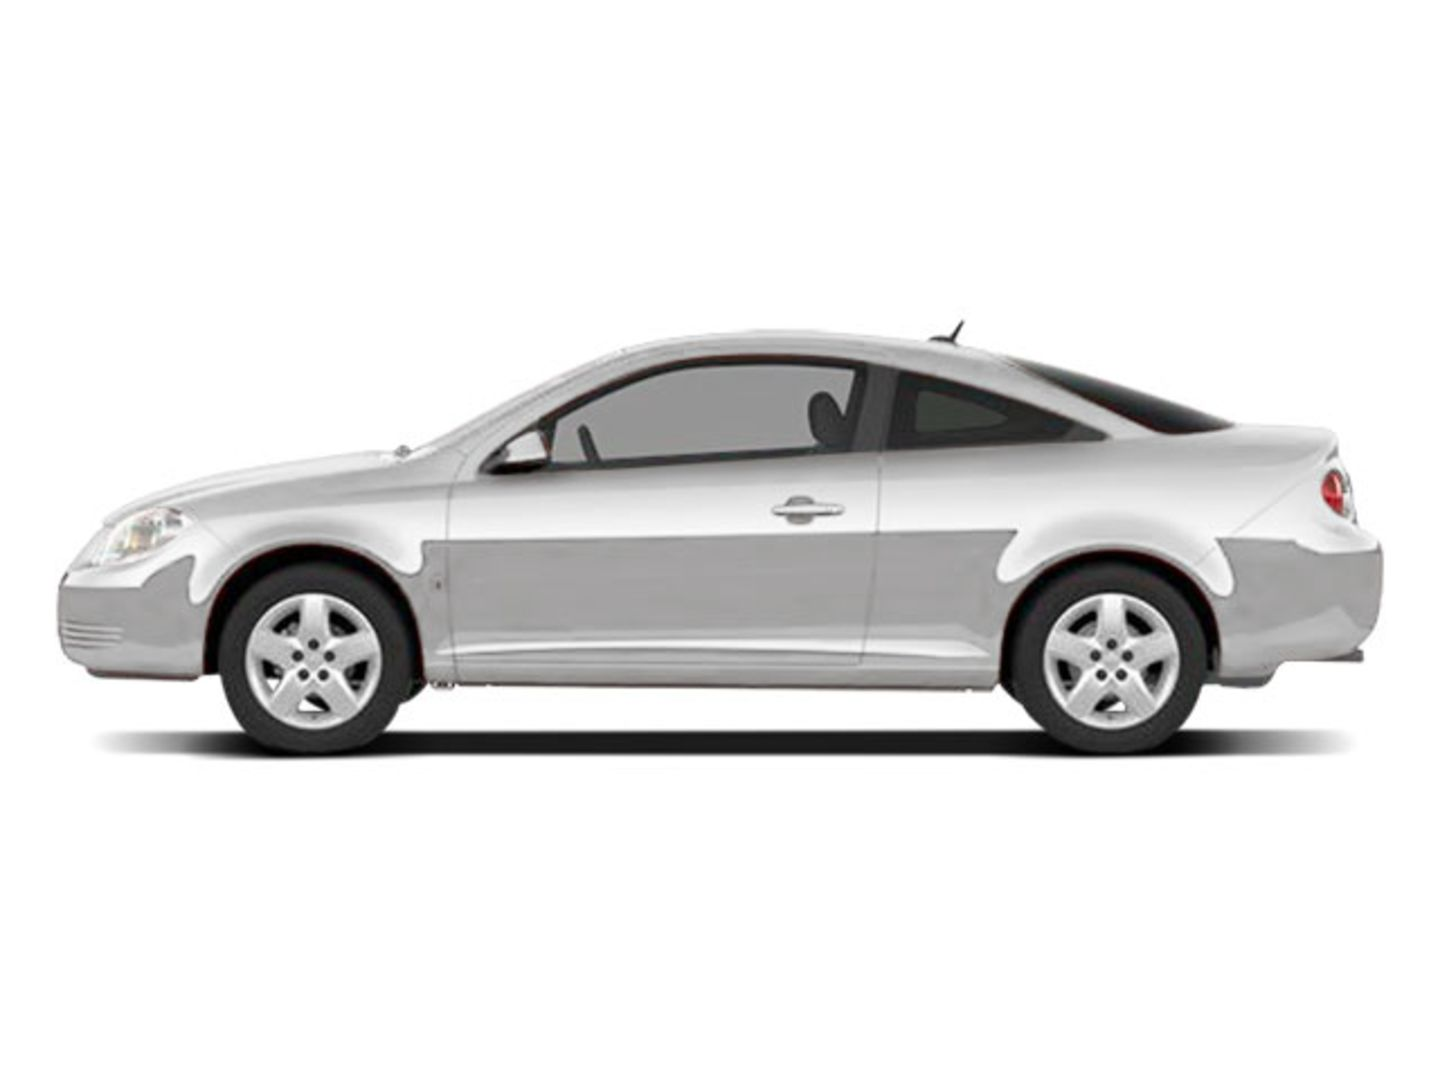 2009 Chevrolet Cobalt LS for sale in Yellowknife, Northwest Territories